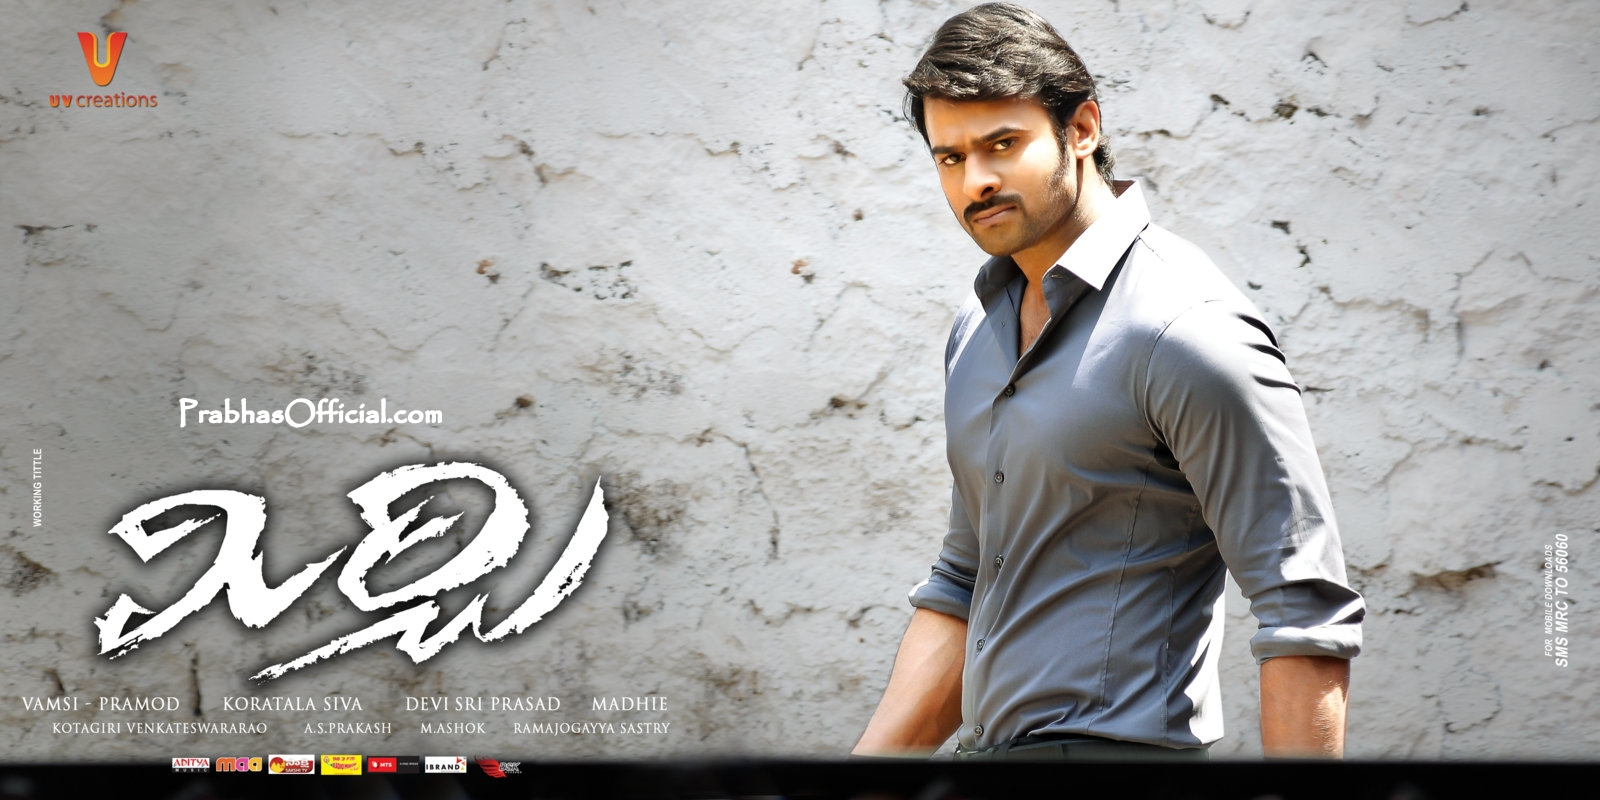 Download 101 South Star Prabhas Dekstop Background: Www.Rebelfans.in: PRABHAS -MIRCHI NEW HD POSTERS